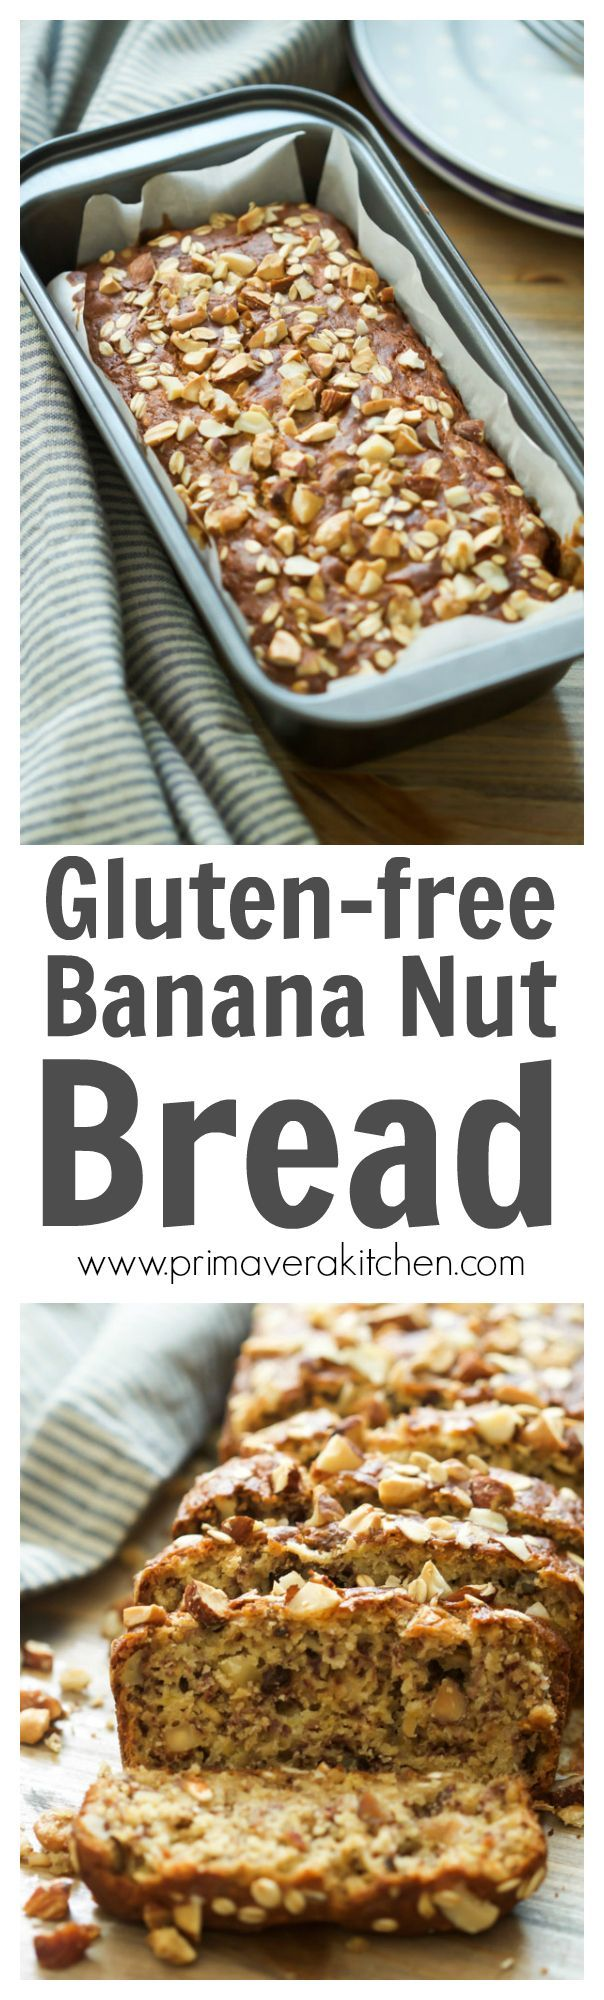 gluten-free-banana-nut-bread - This Gluten-free Banana Nut Bread is ...